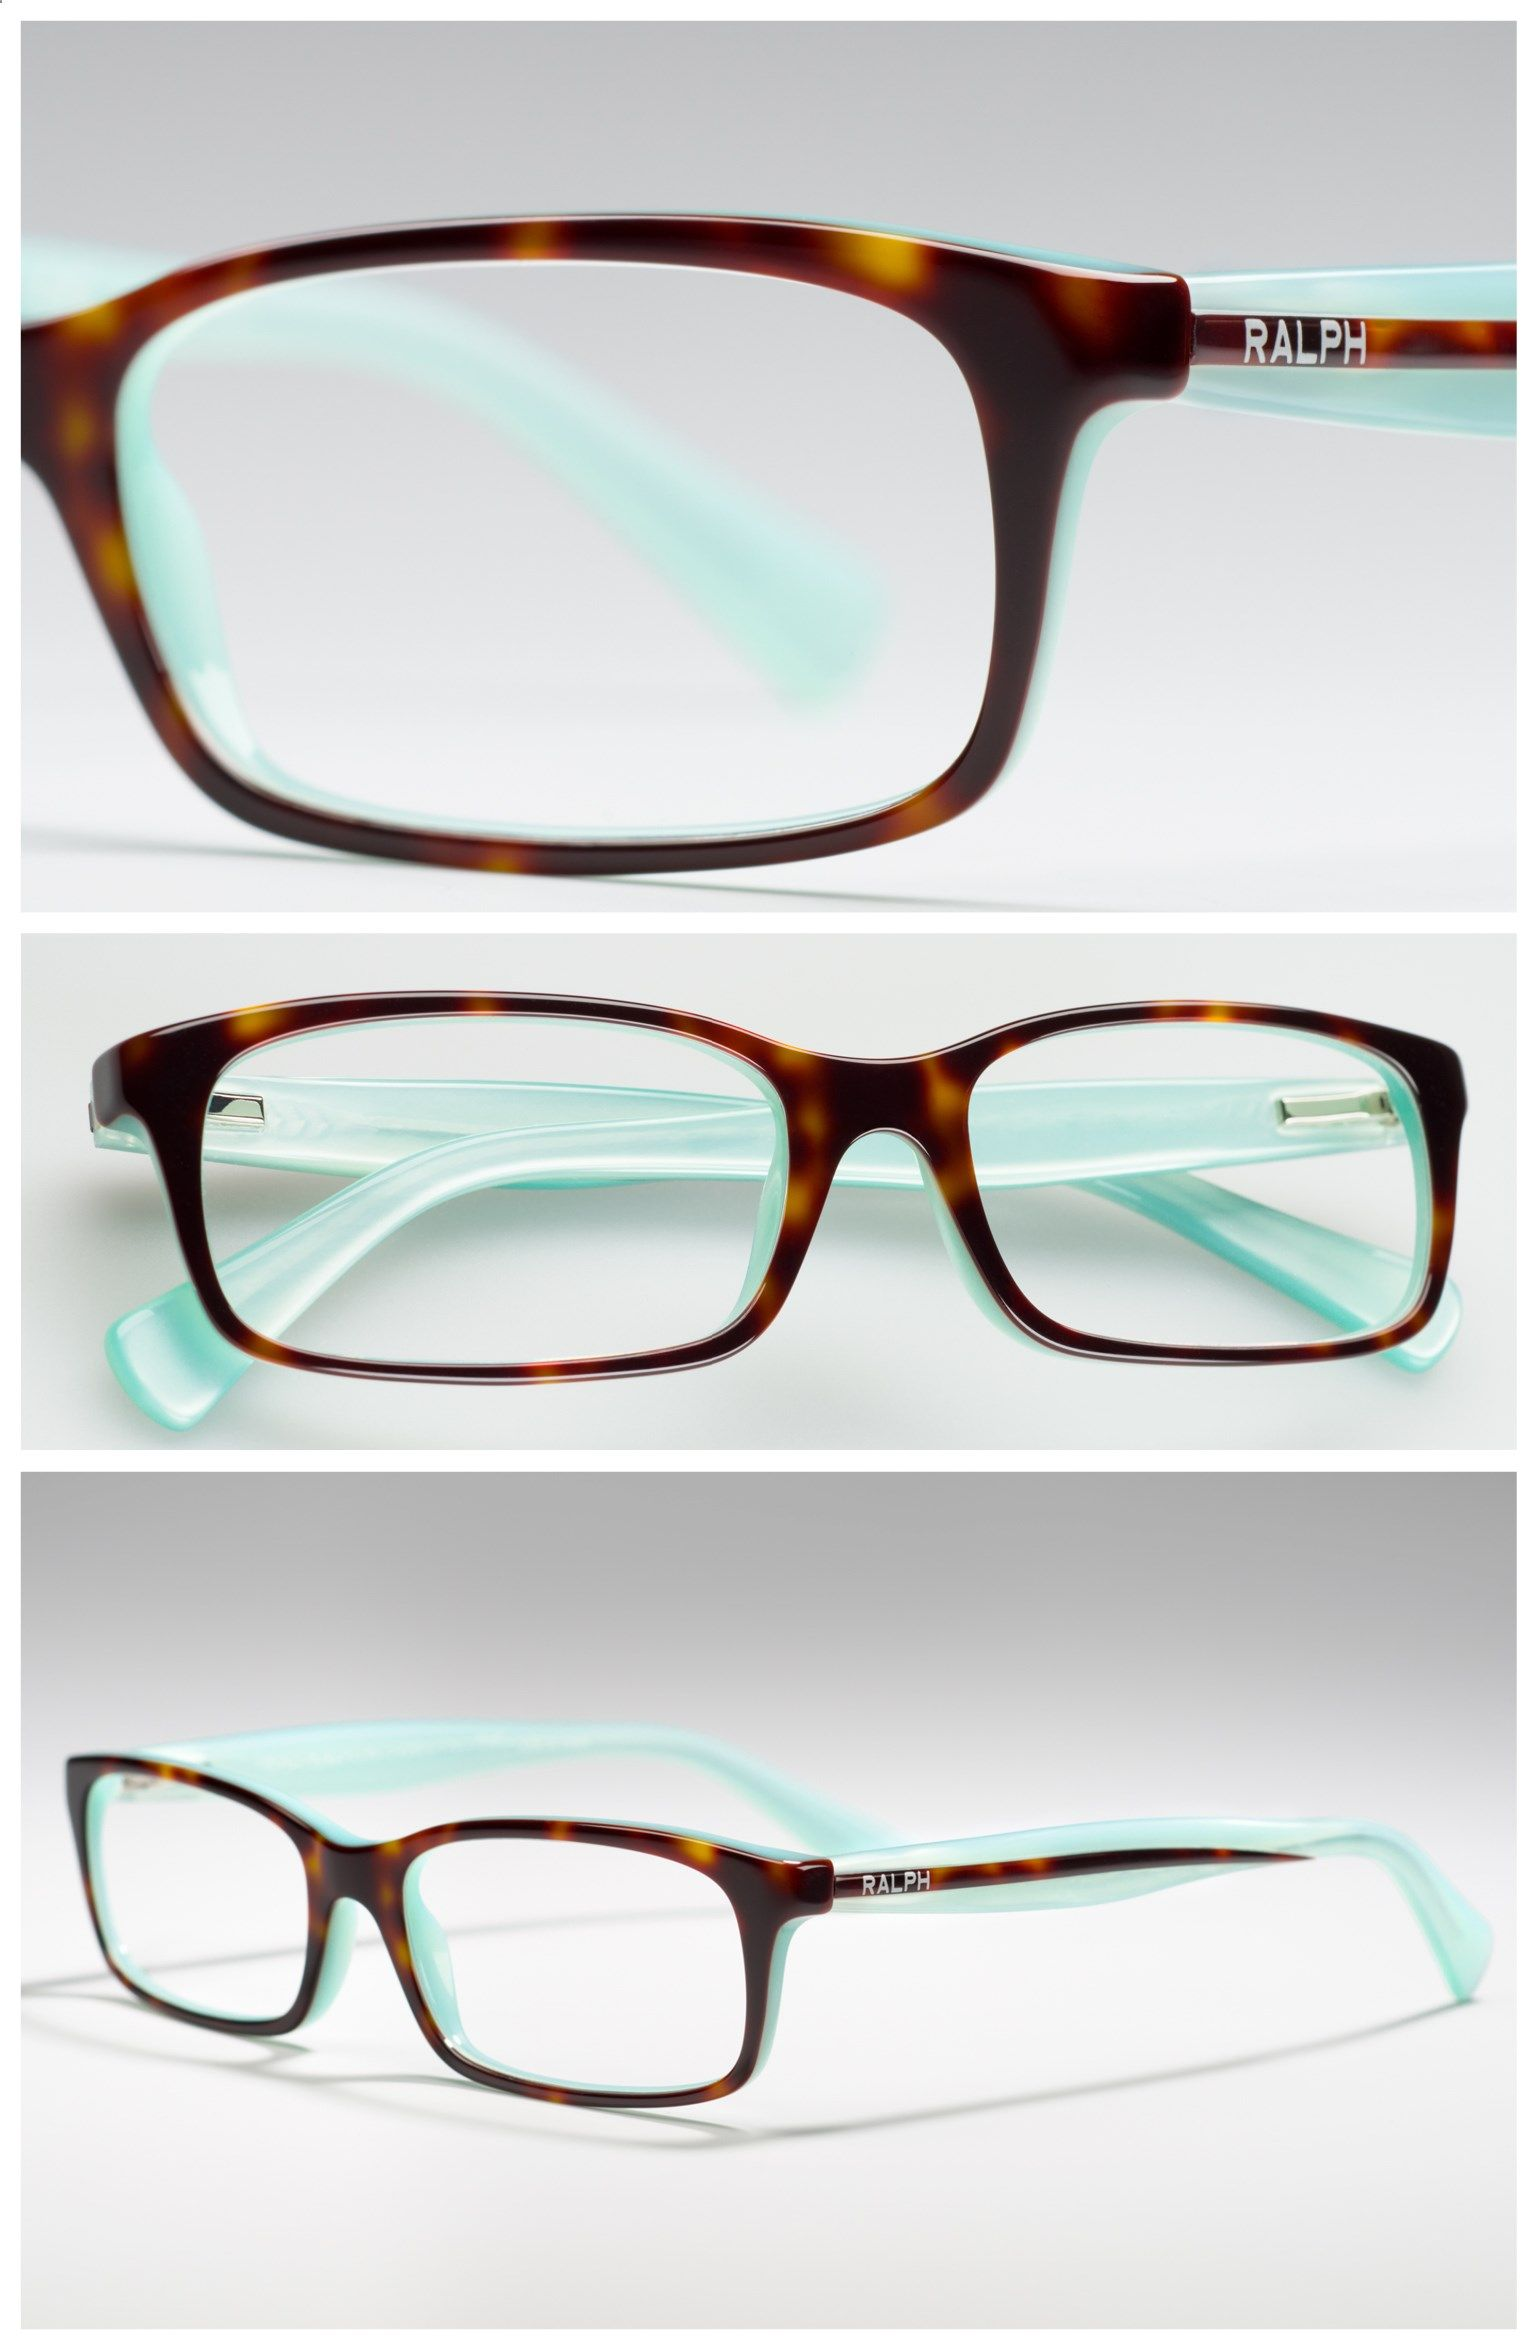 1b02ad98f9 Aqua tortoise shell Ralph by Ralph Lauren glasses. Two of my favourites!